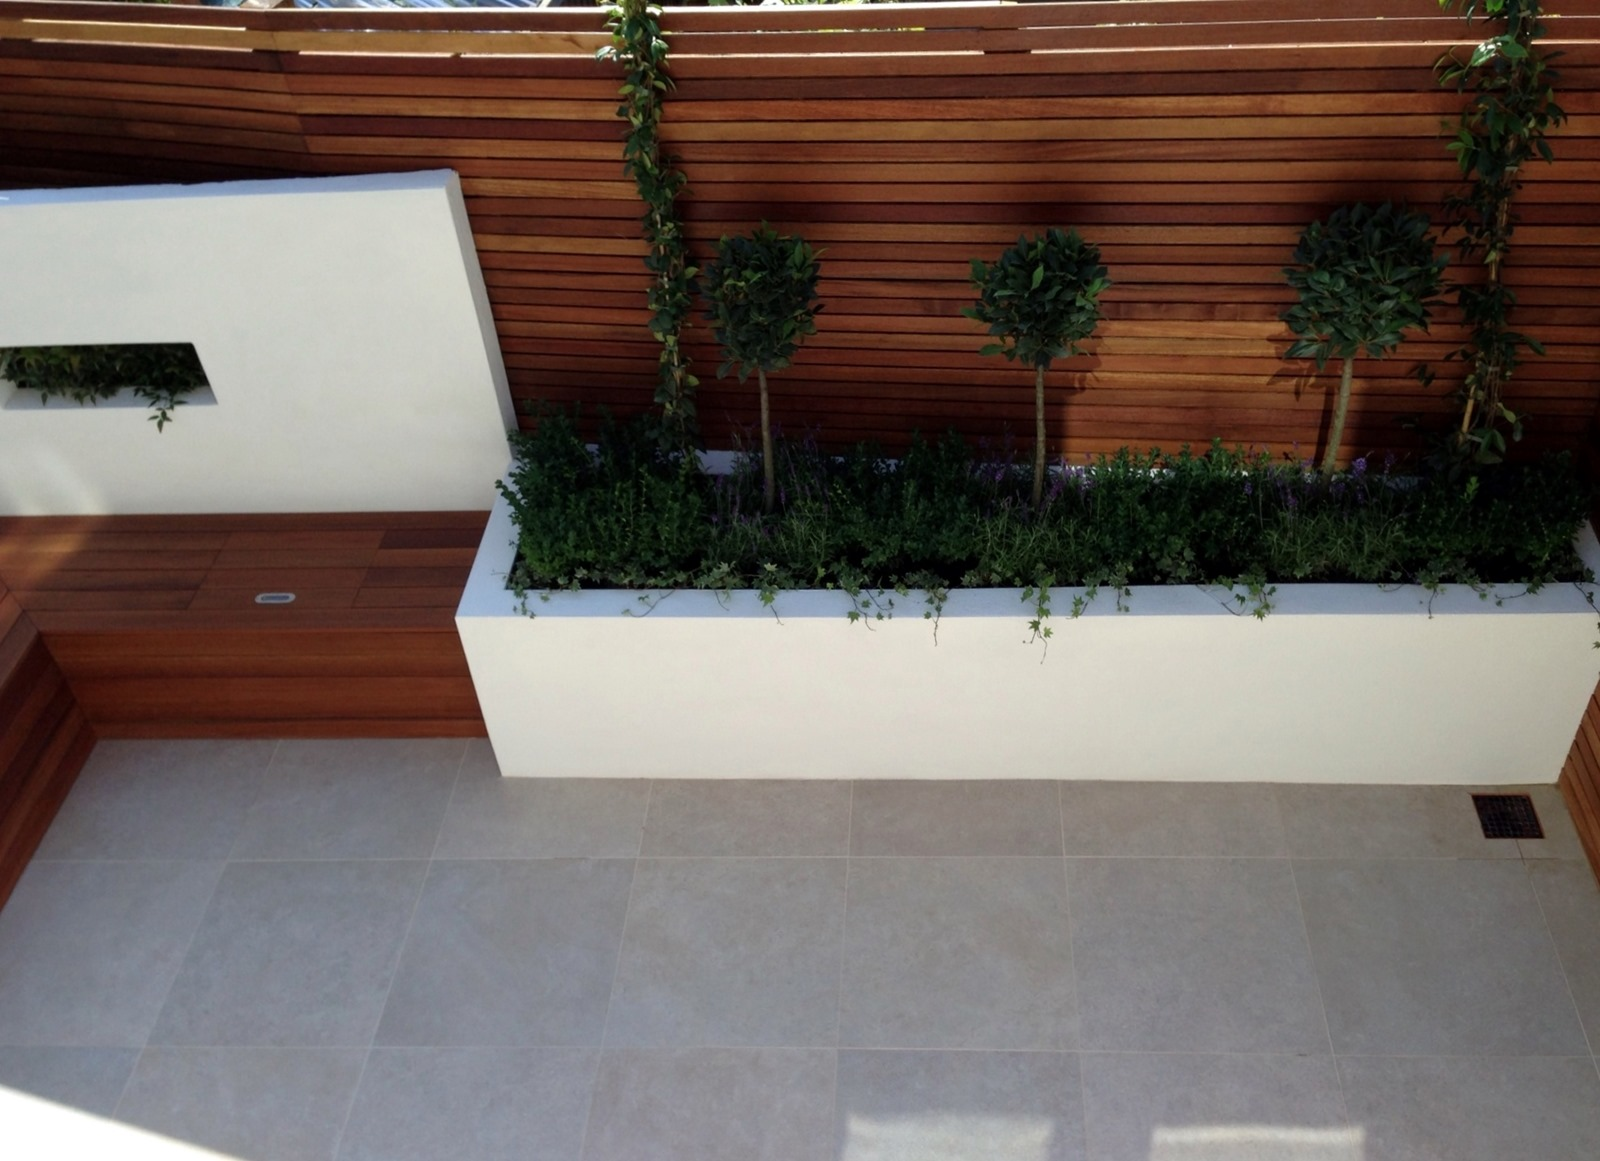 Small garden design london clapham balham ideas low for Garden design ideas low maintenance uk